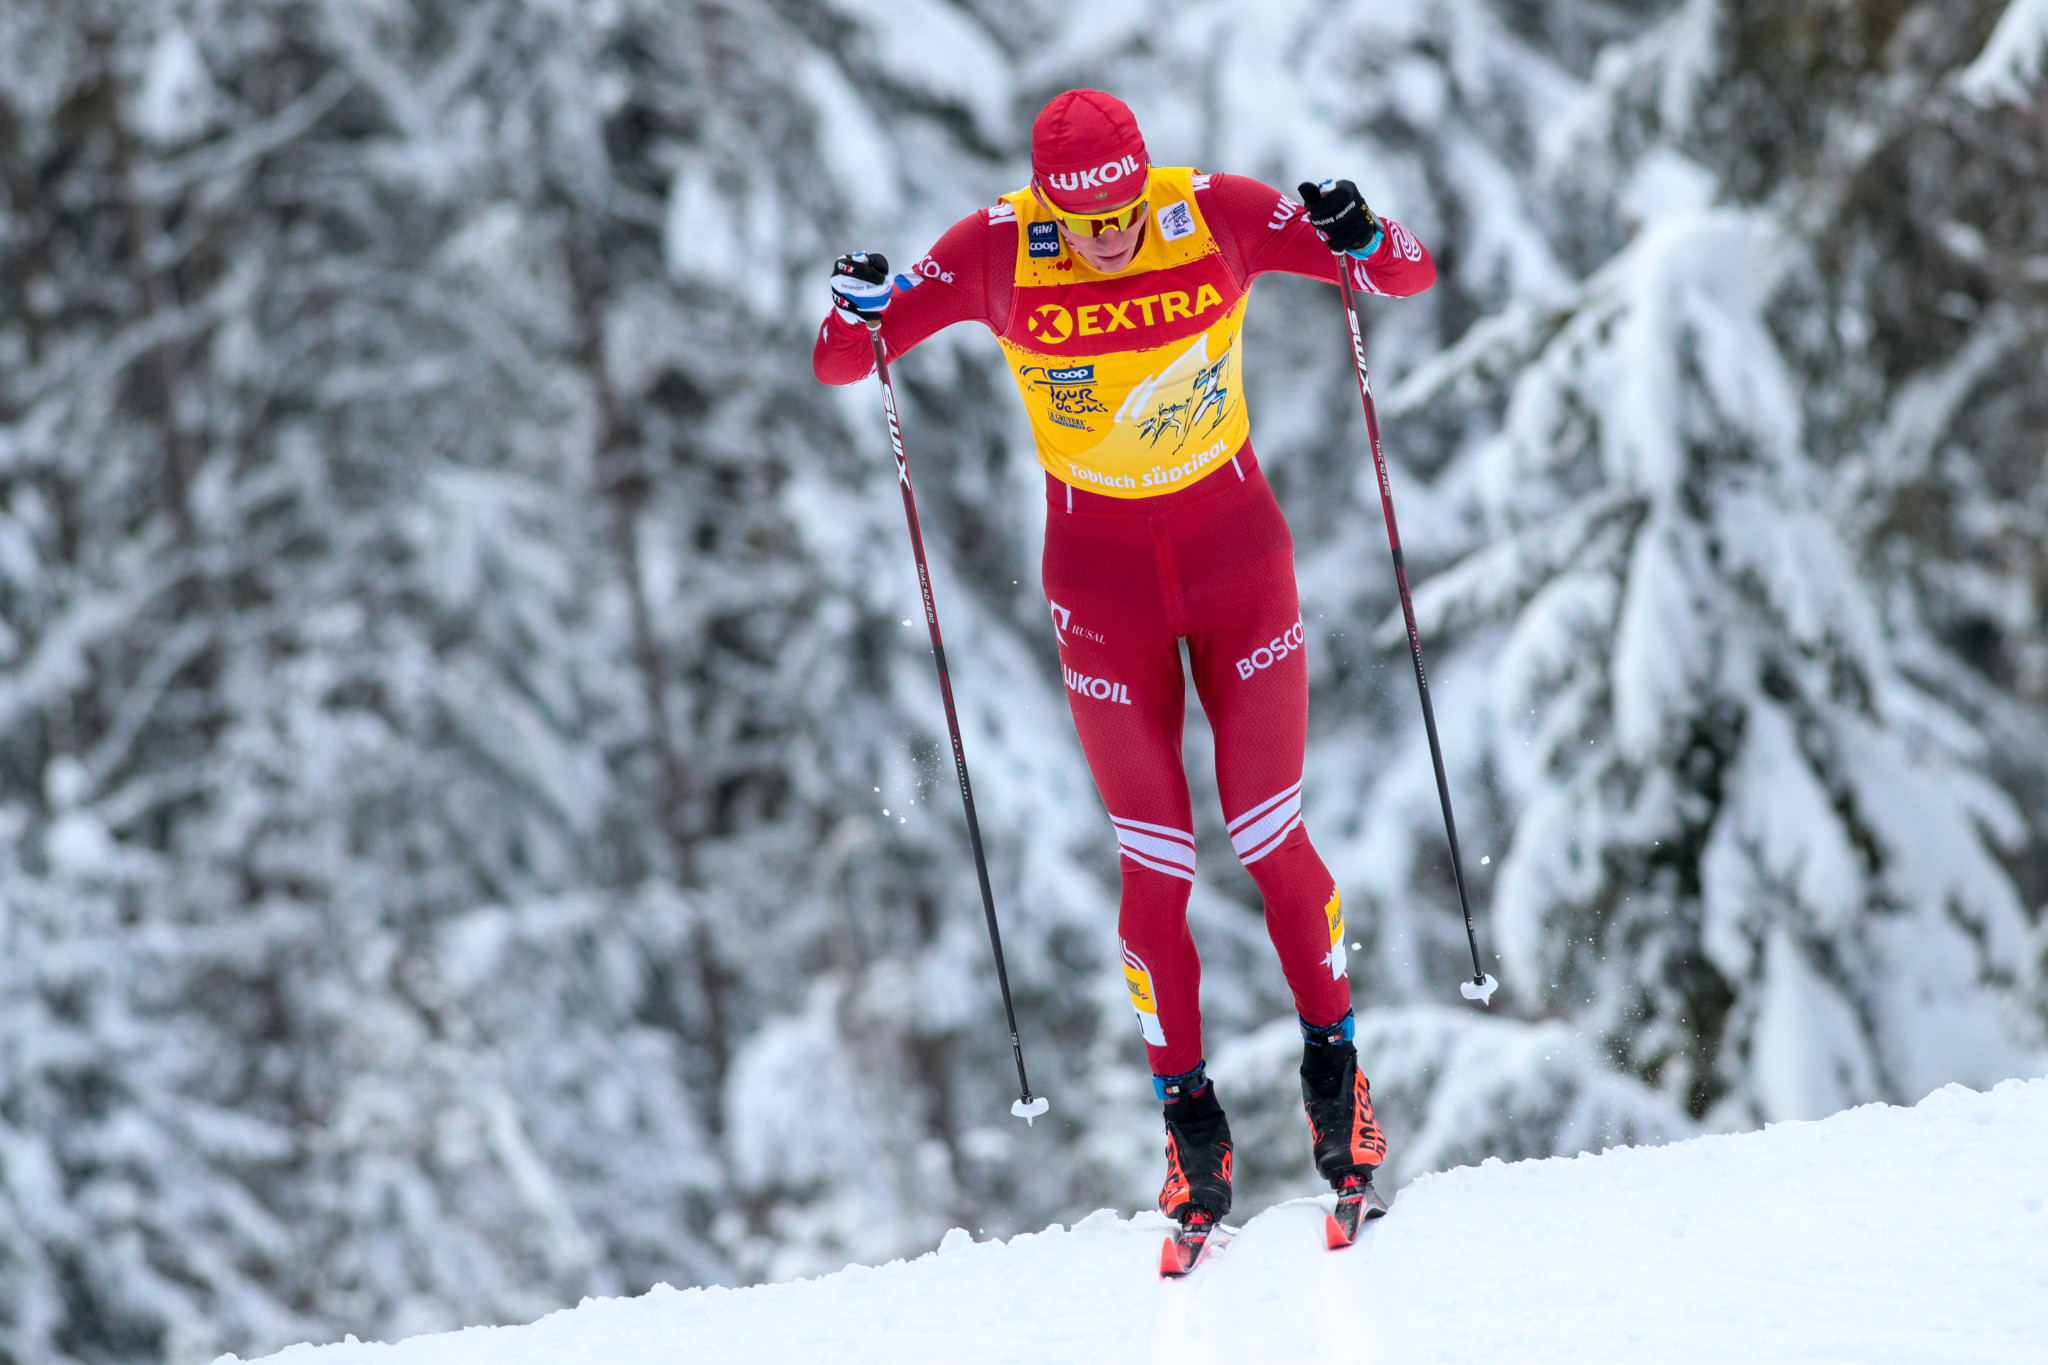 Russia's Alexander Bolshunov leads the men's overall Cross-Country World Cup standings ©Getty Images